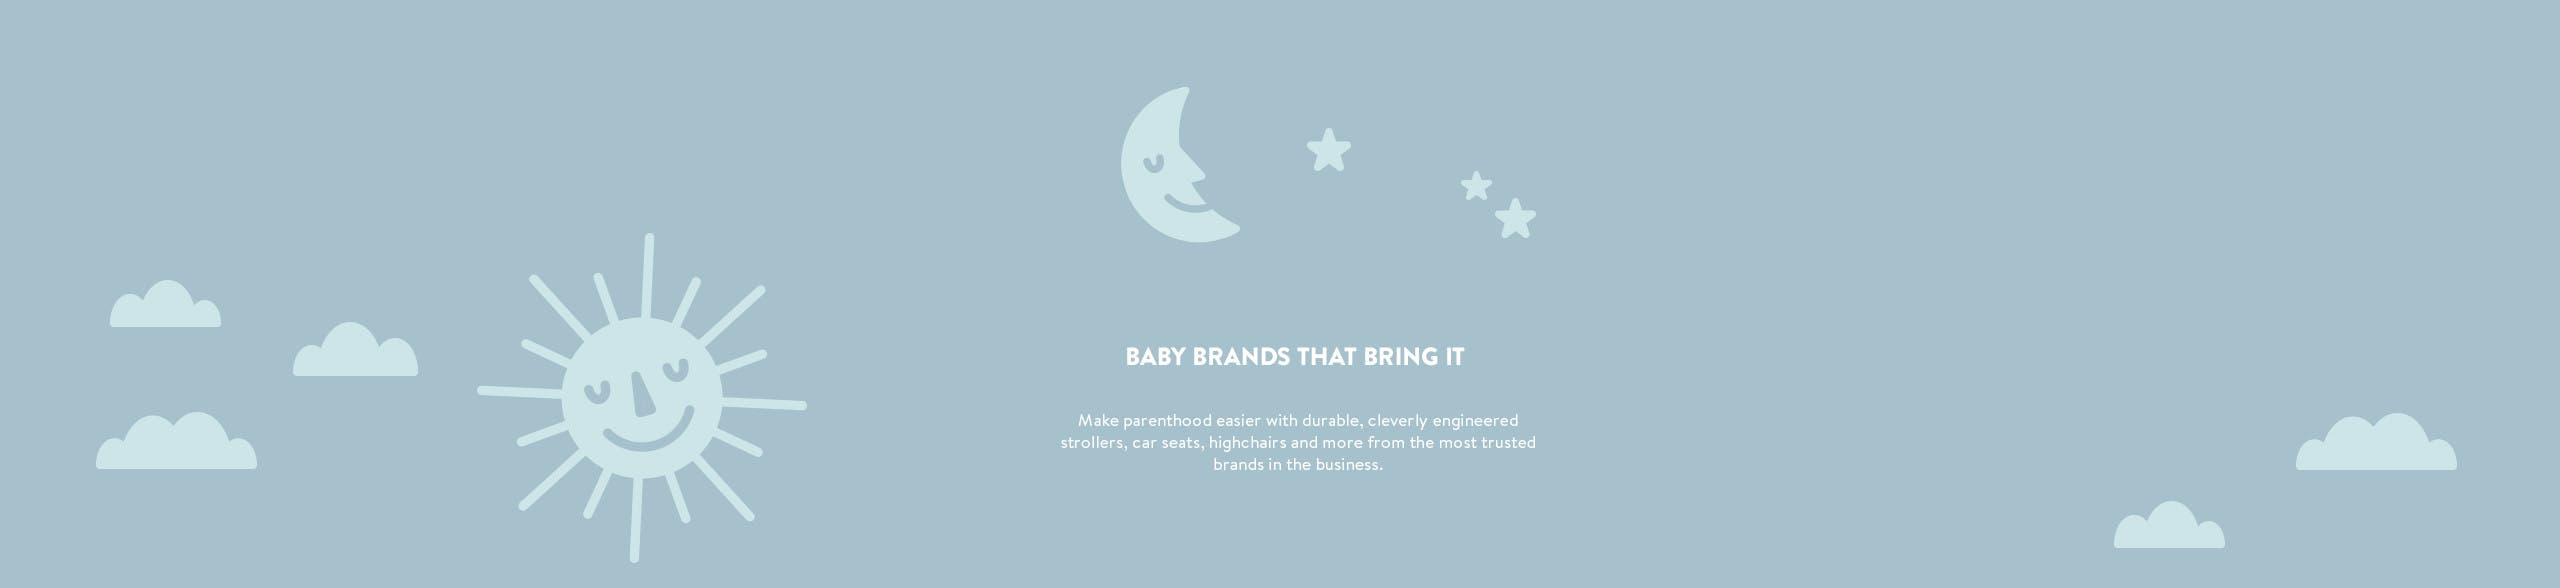 Baby brands that bring it. Durable, cleverly engineered strollers, car seats, highchairs and more from trusted brands.